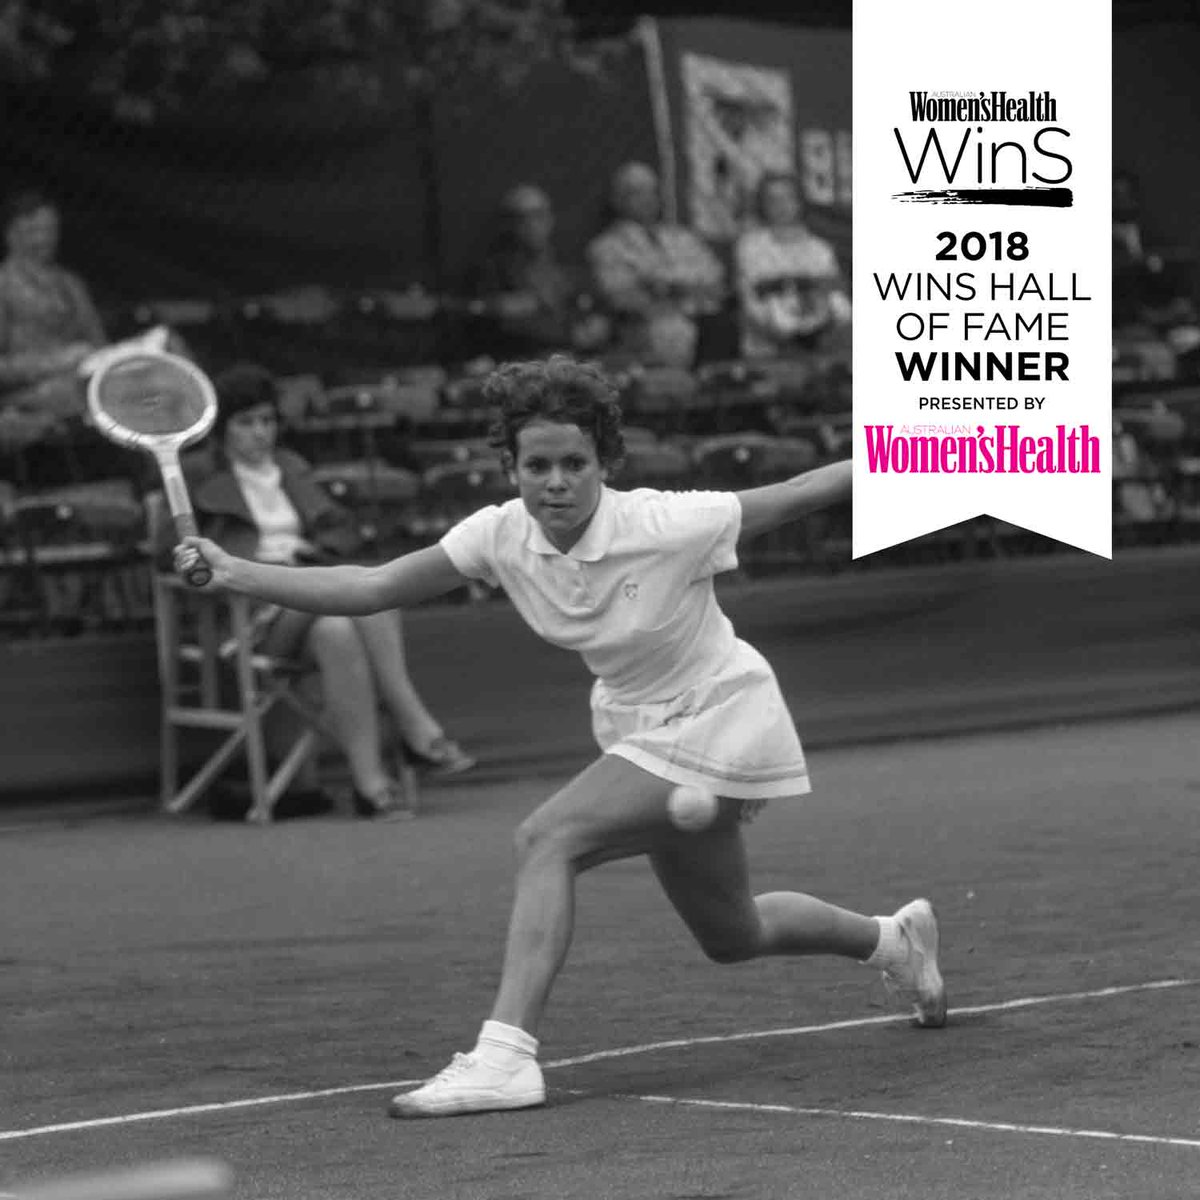 Evonne Goolagong 7 Grand Slam singles titles Evonne Goolagong 7 Grand Slam singles titles new photo